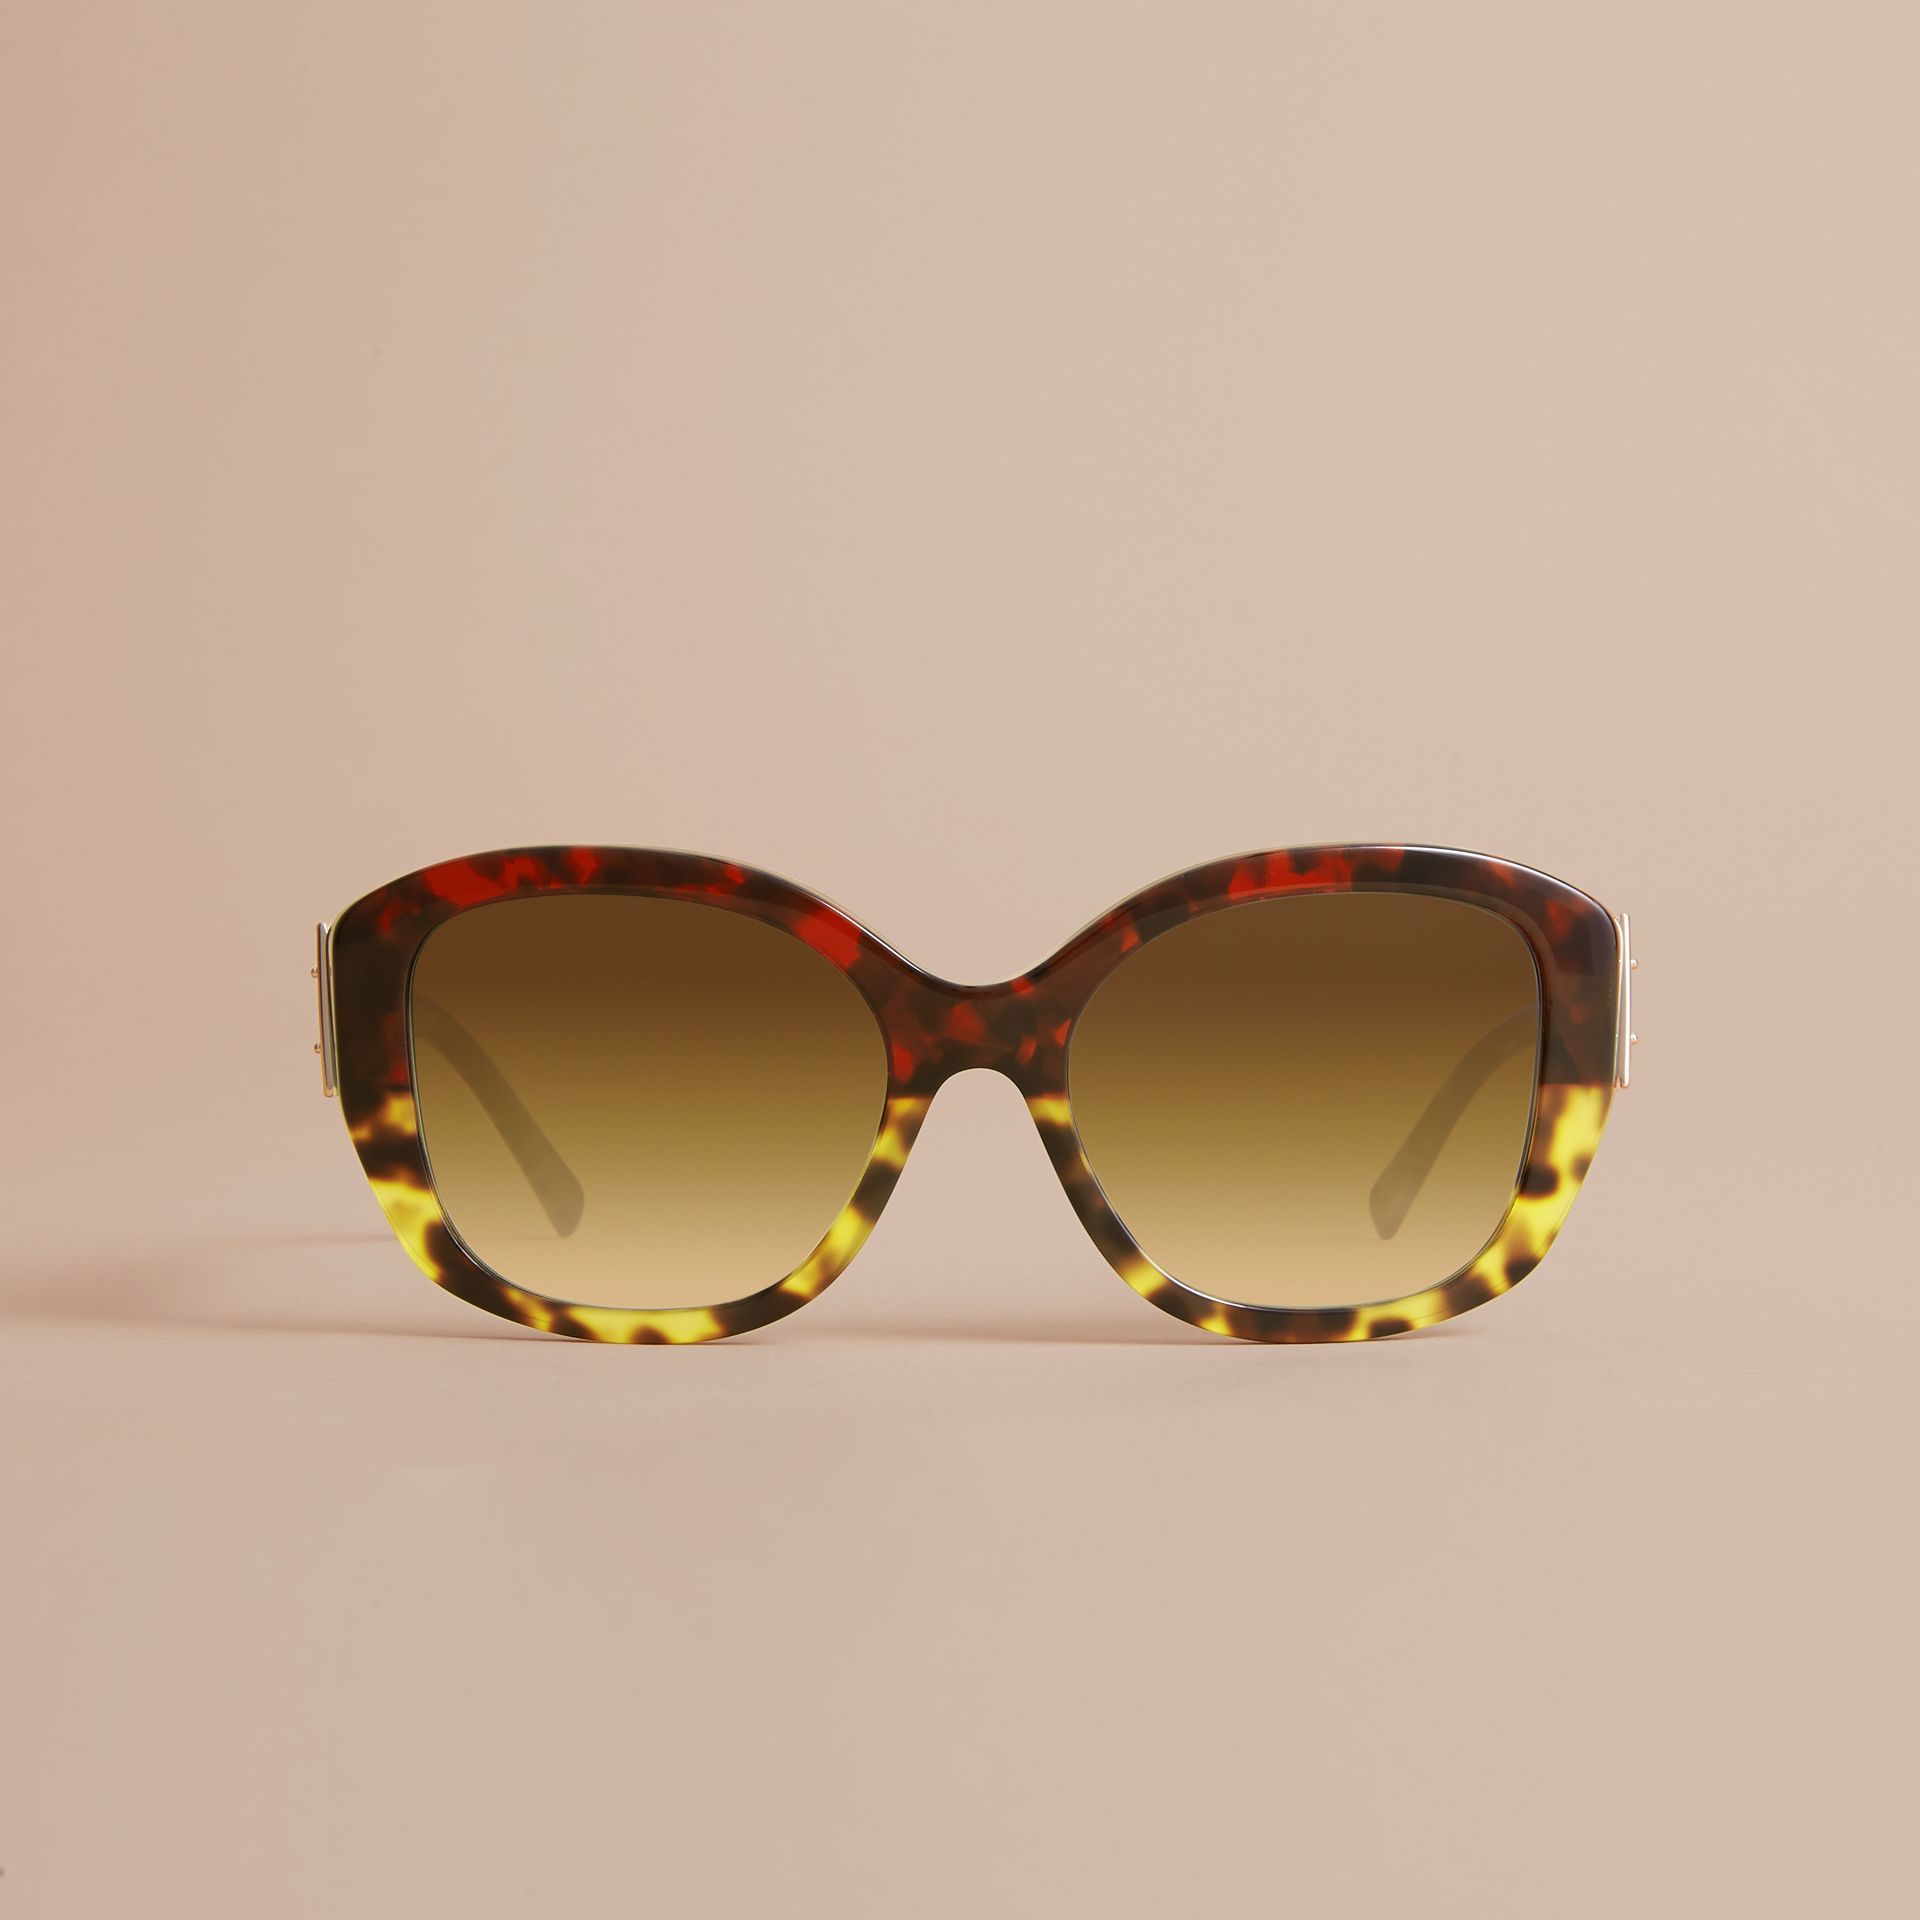 Buckle Detail Oversize Square Frame Sunglasses in Amber Yellow - Women | Burberry Canada - gallery image 2